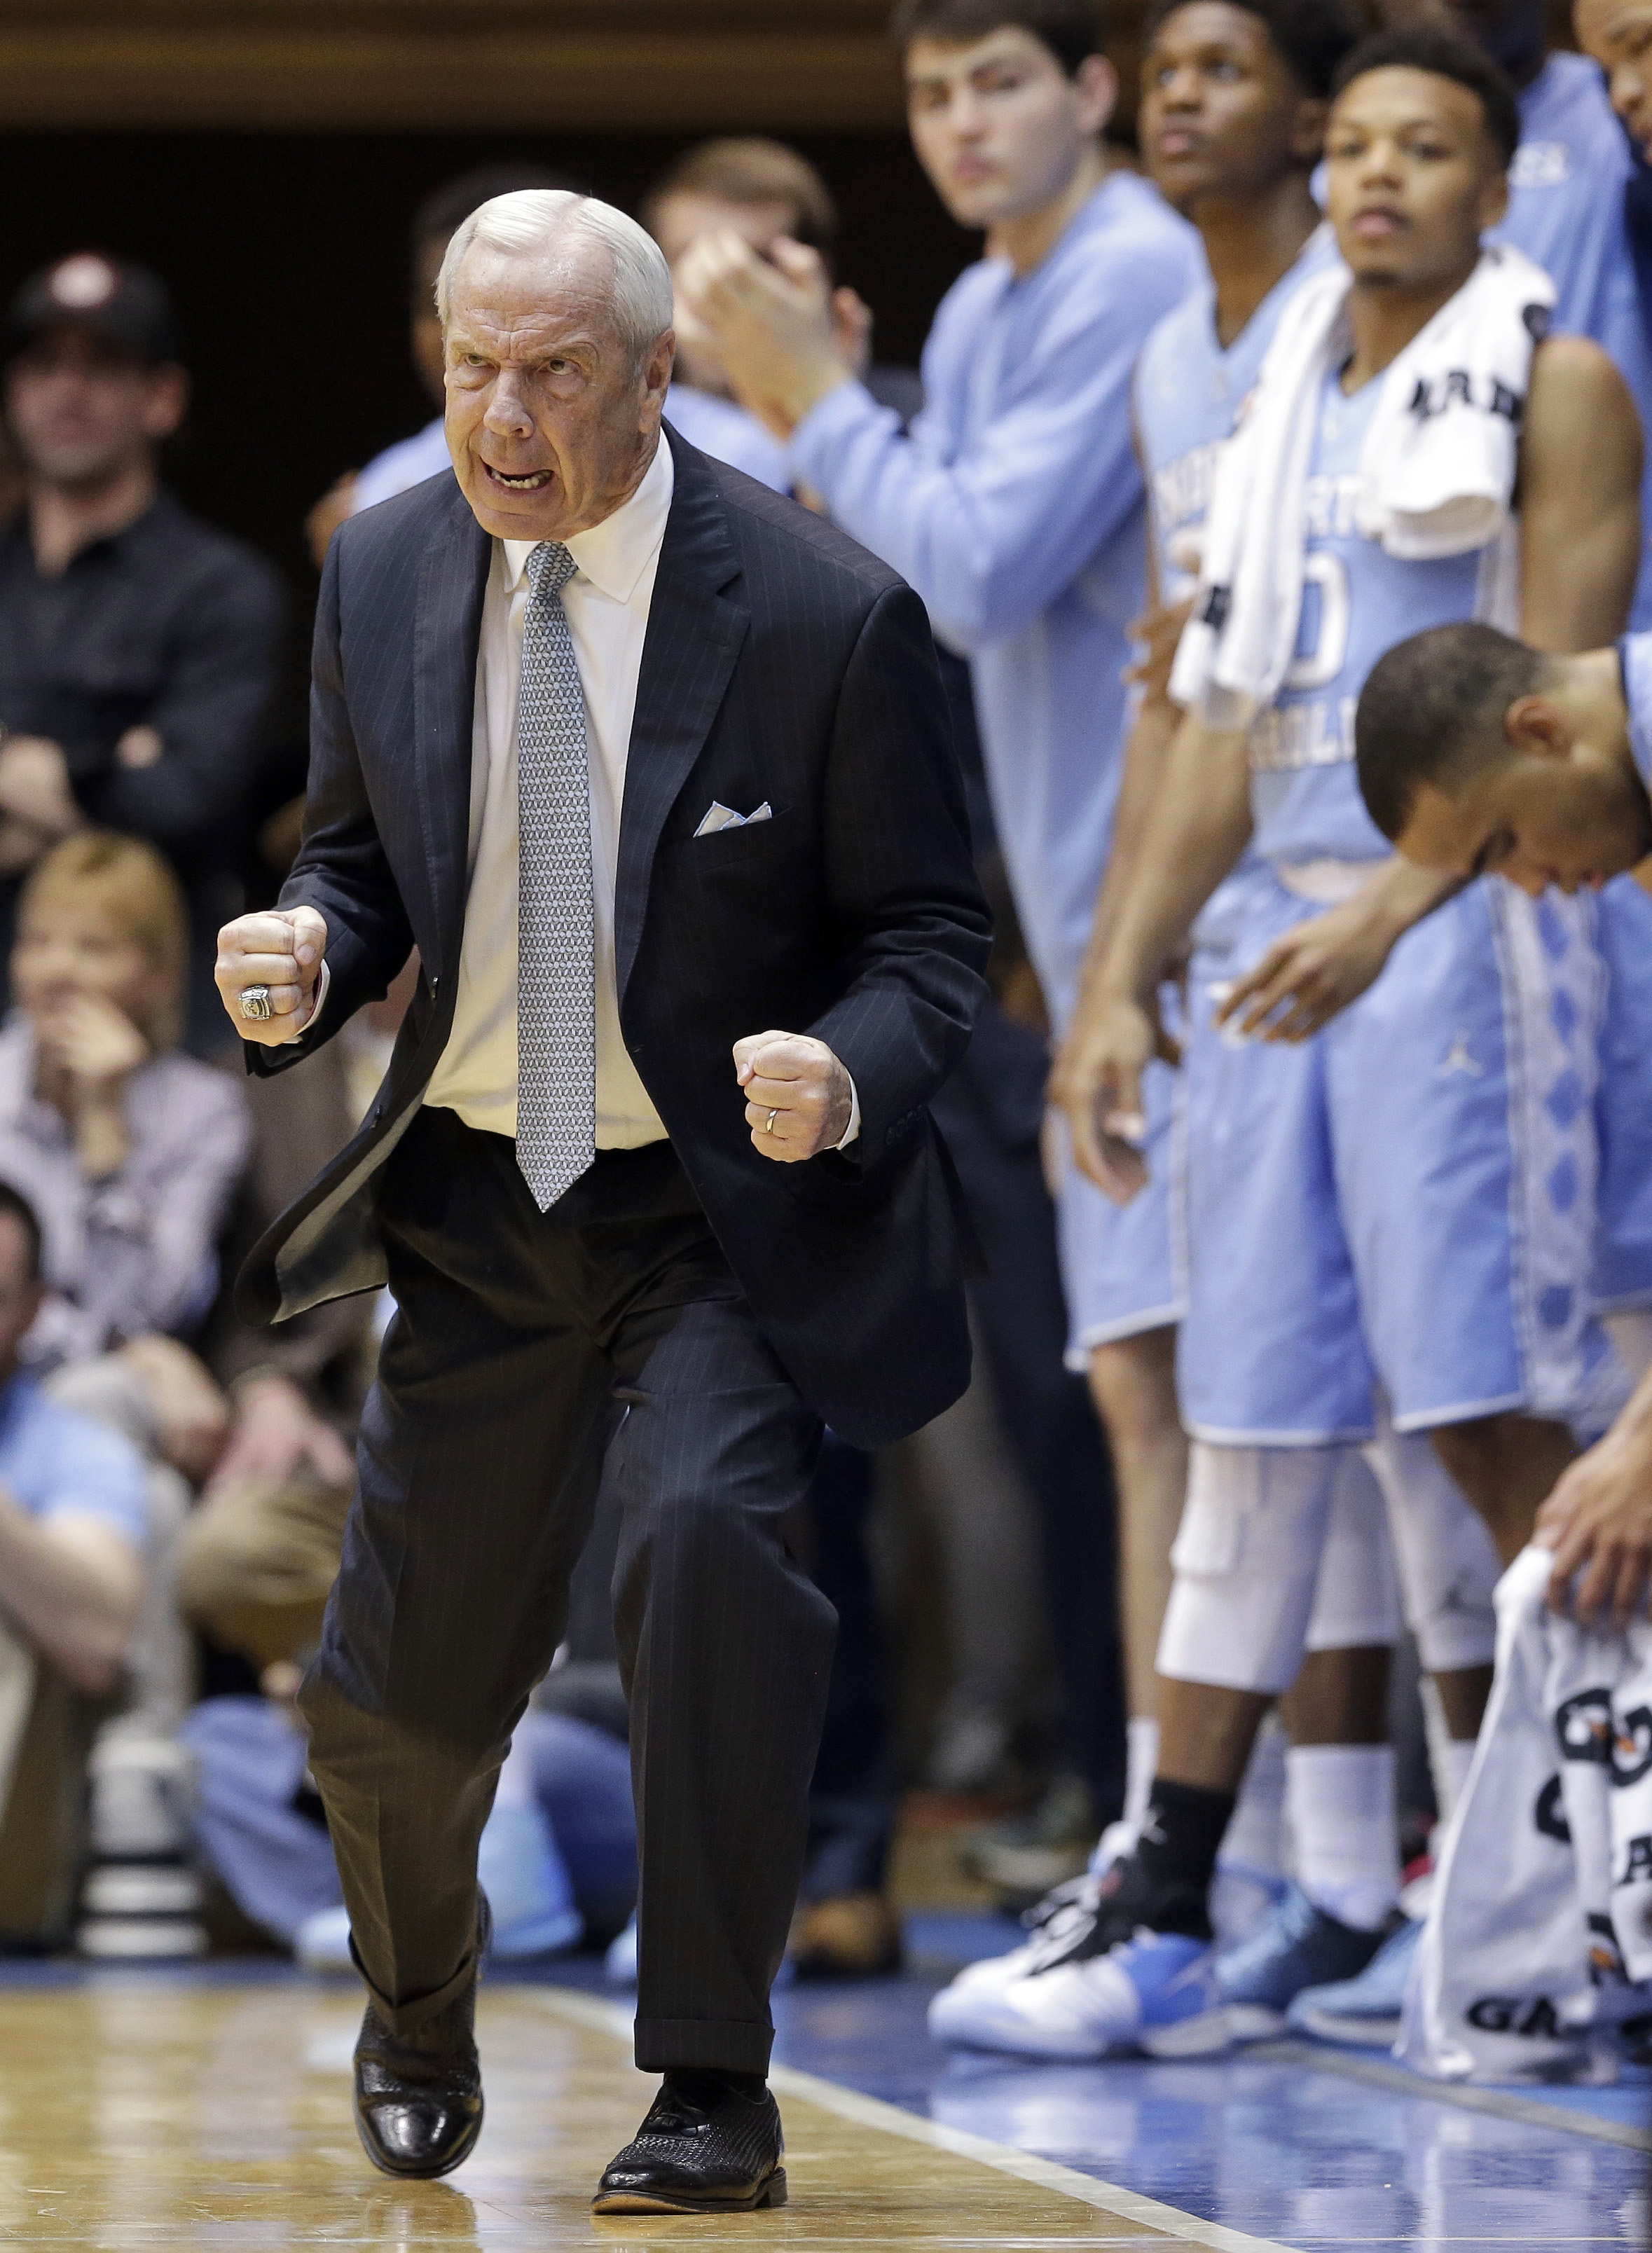 North Carolina coach Roy Williams reacts during the second half of an NCAA college basketball game against Duke in Durham, N.C., Saturday, March 5, 2016. North Carolina won 76-72. (AP Photo/Gerry Broome)